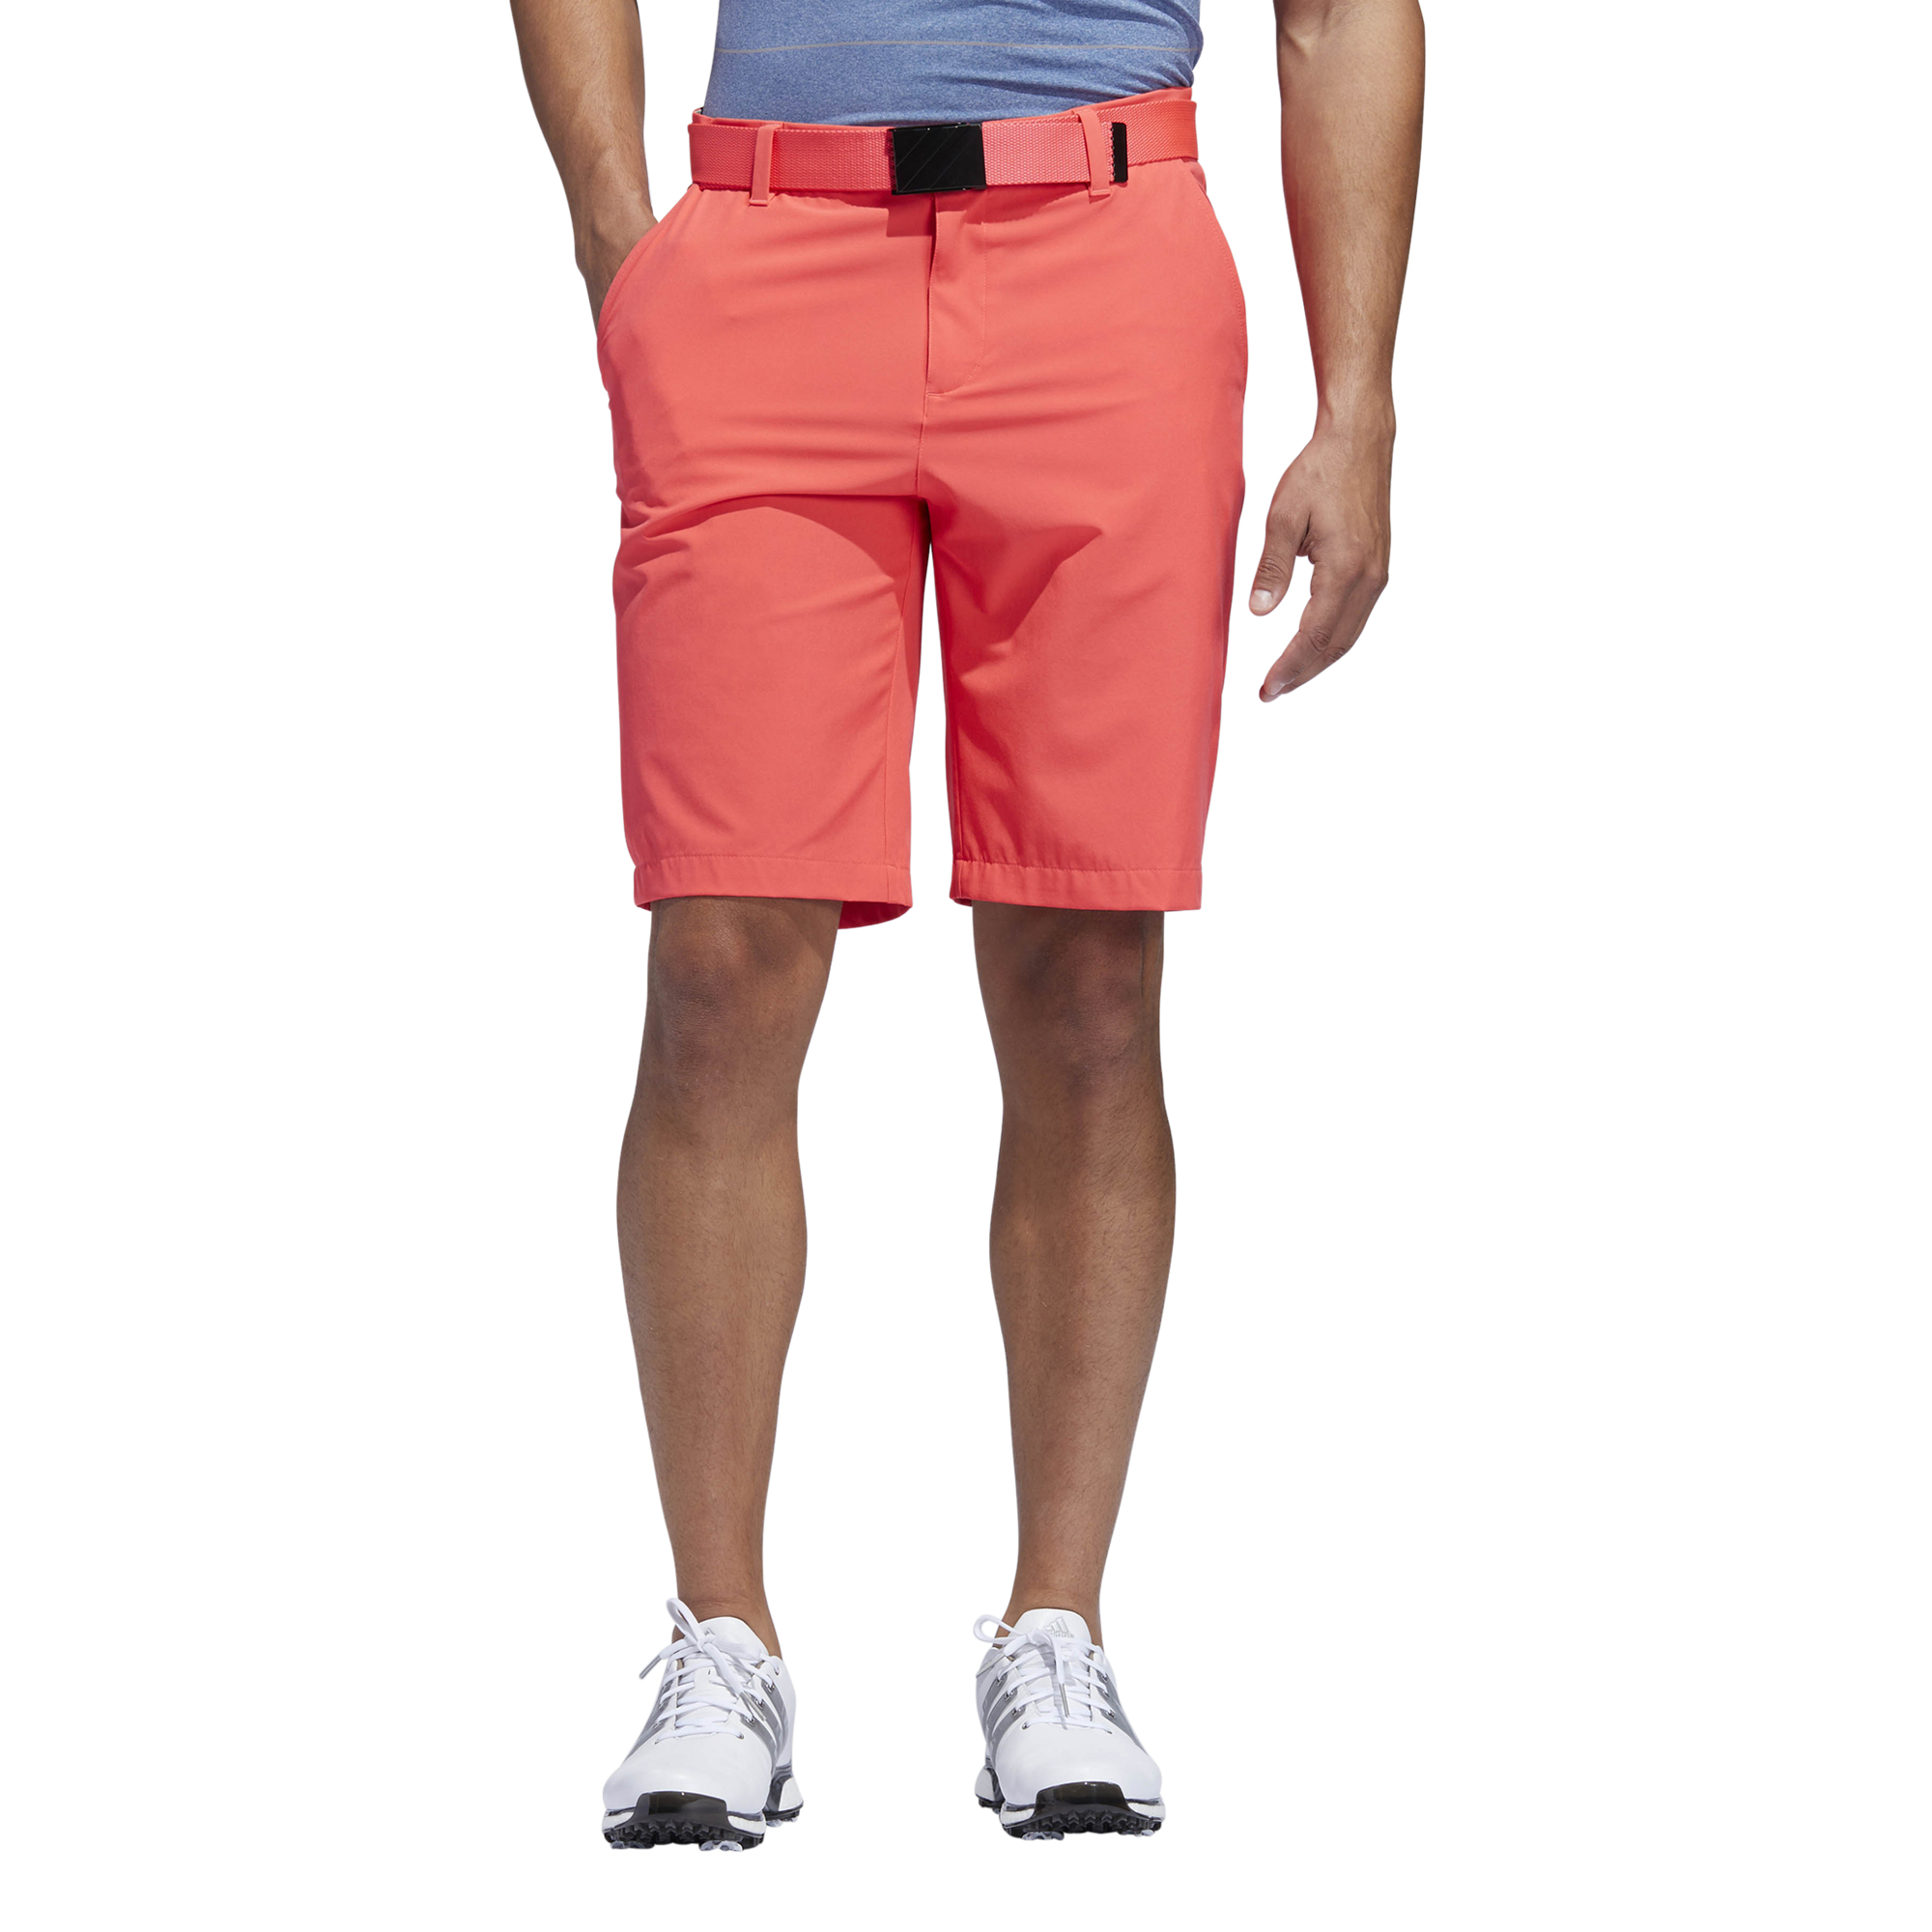 adidas-Golf-2020-Ultimate-365-Stretch-Mens-Golf-Shorts-10-5-034-Inseam thumbnail 33